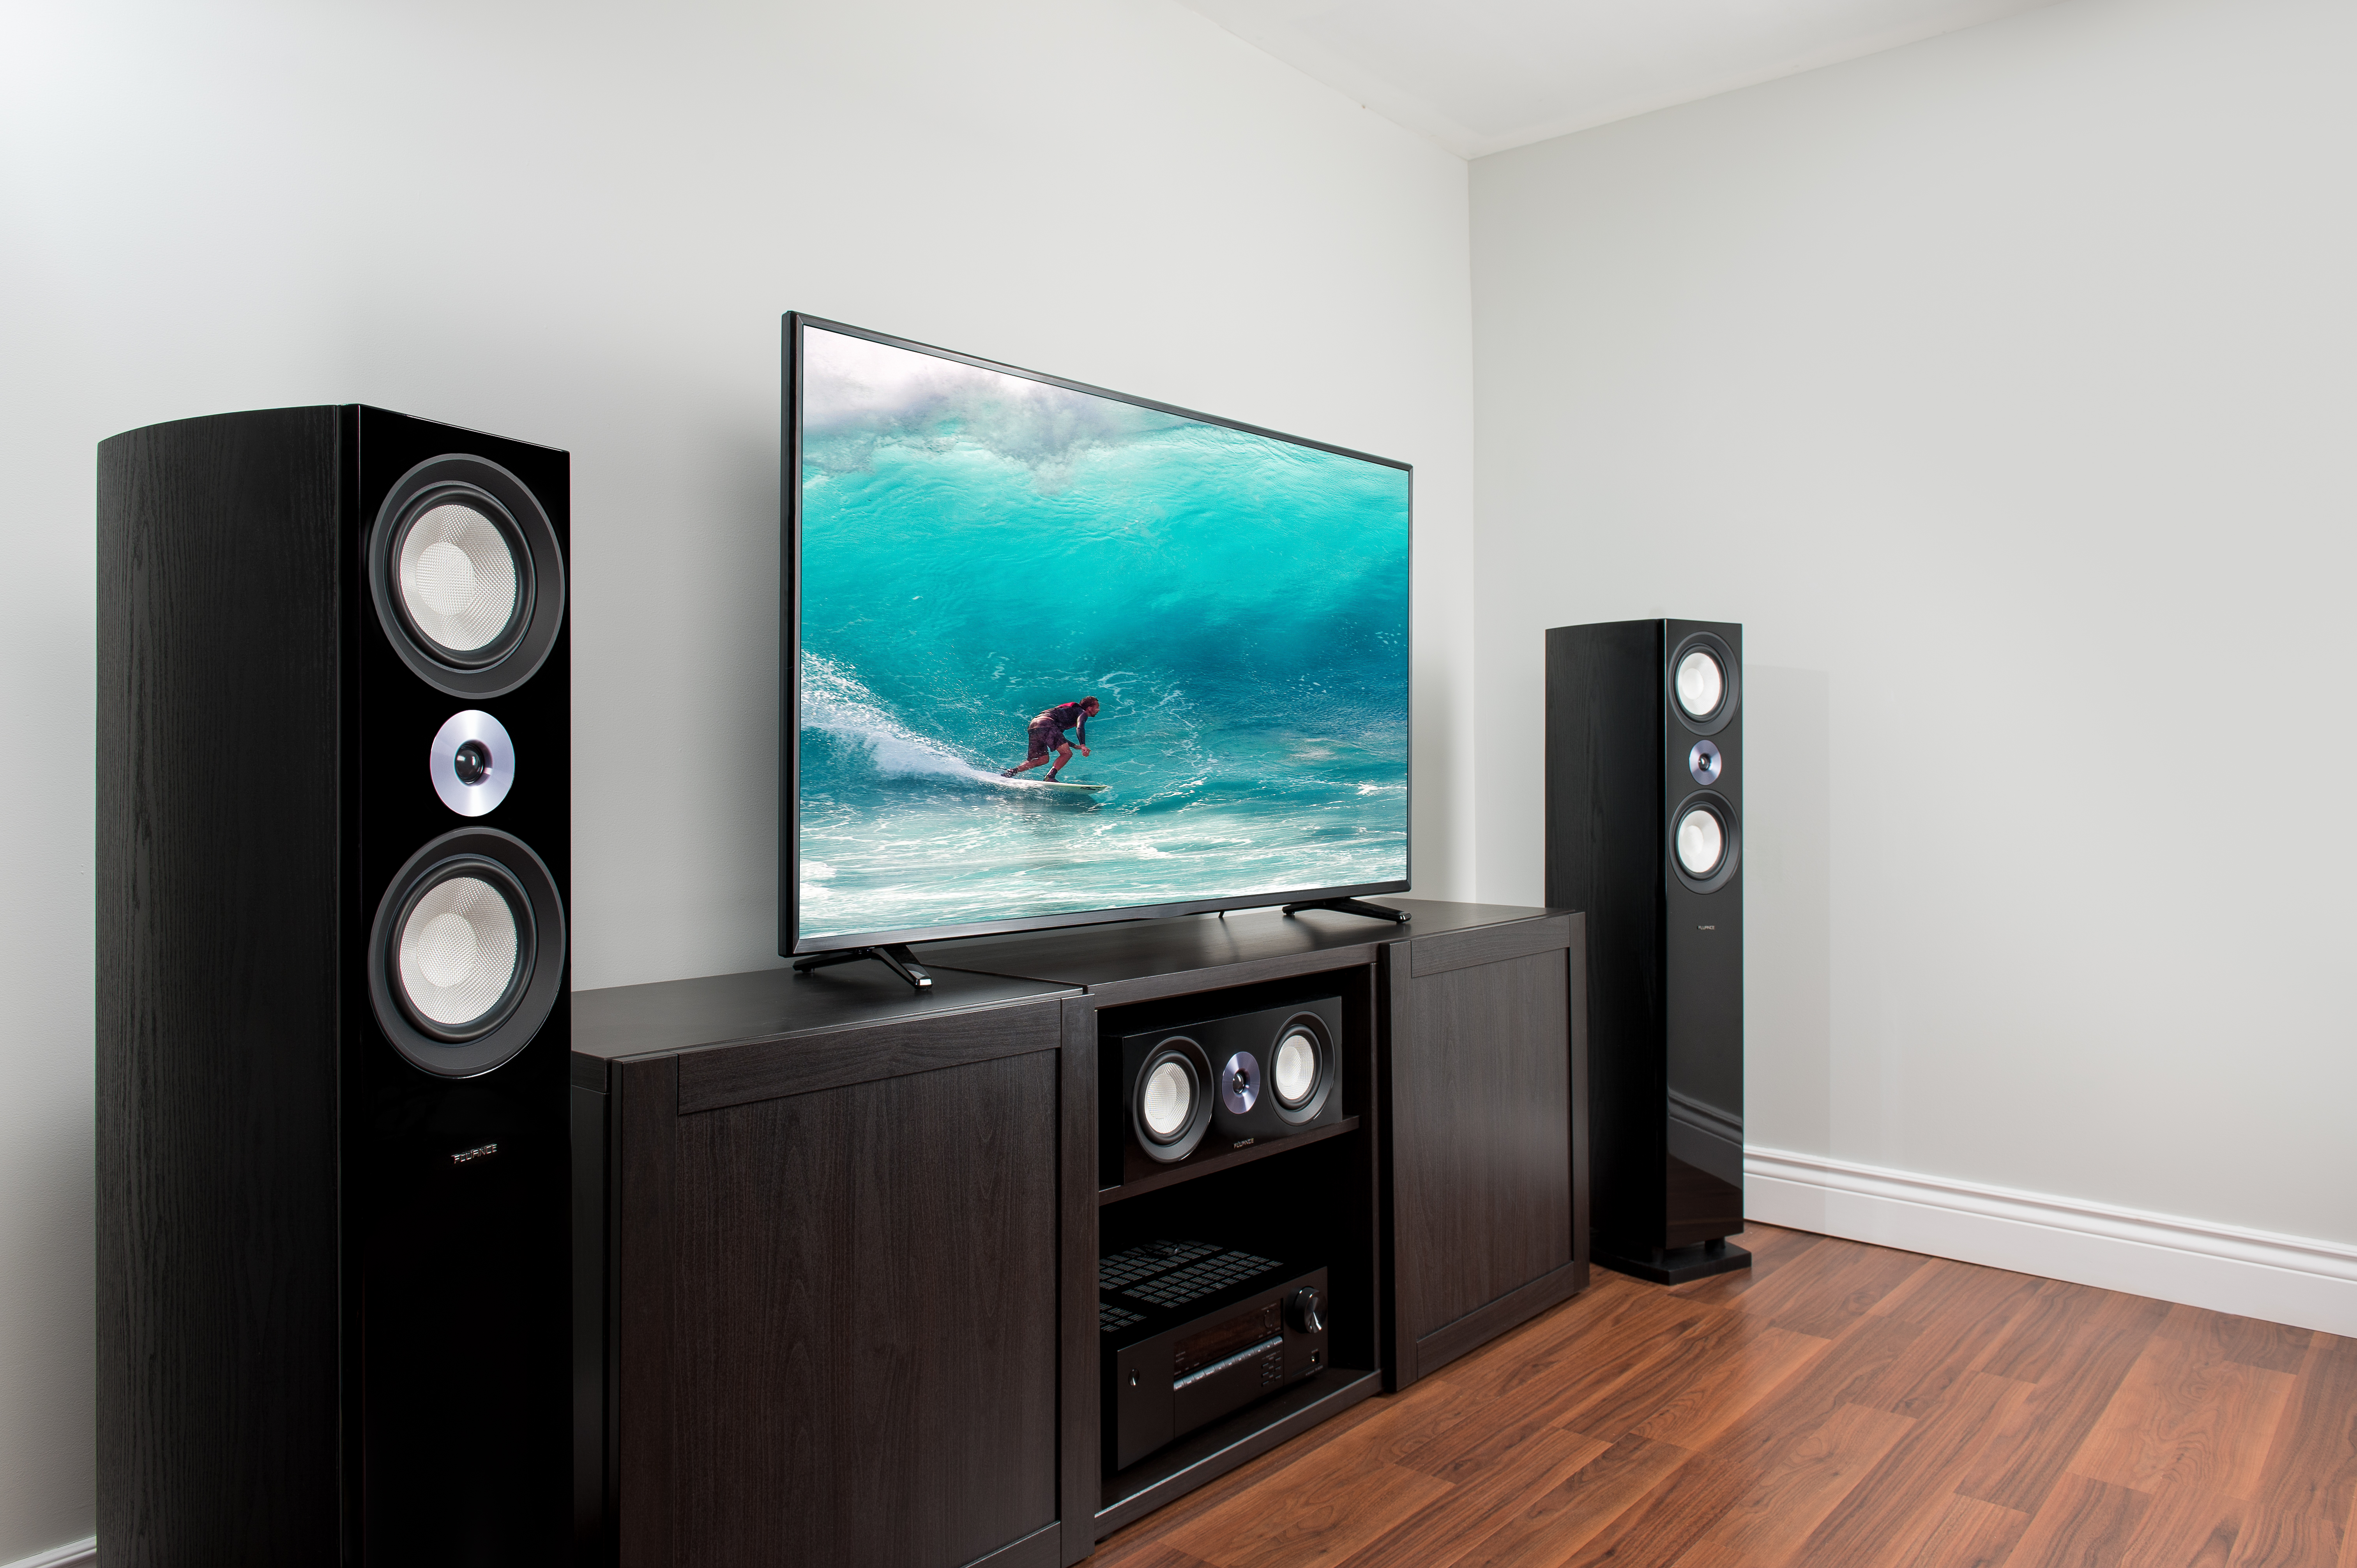 Fluance XL8 Reference Series Speakers with Tower Speakers and Center Channel